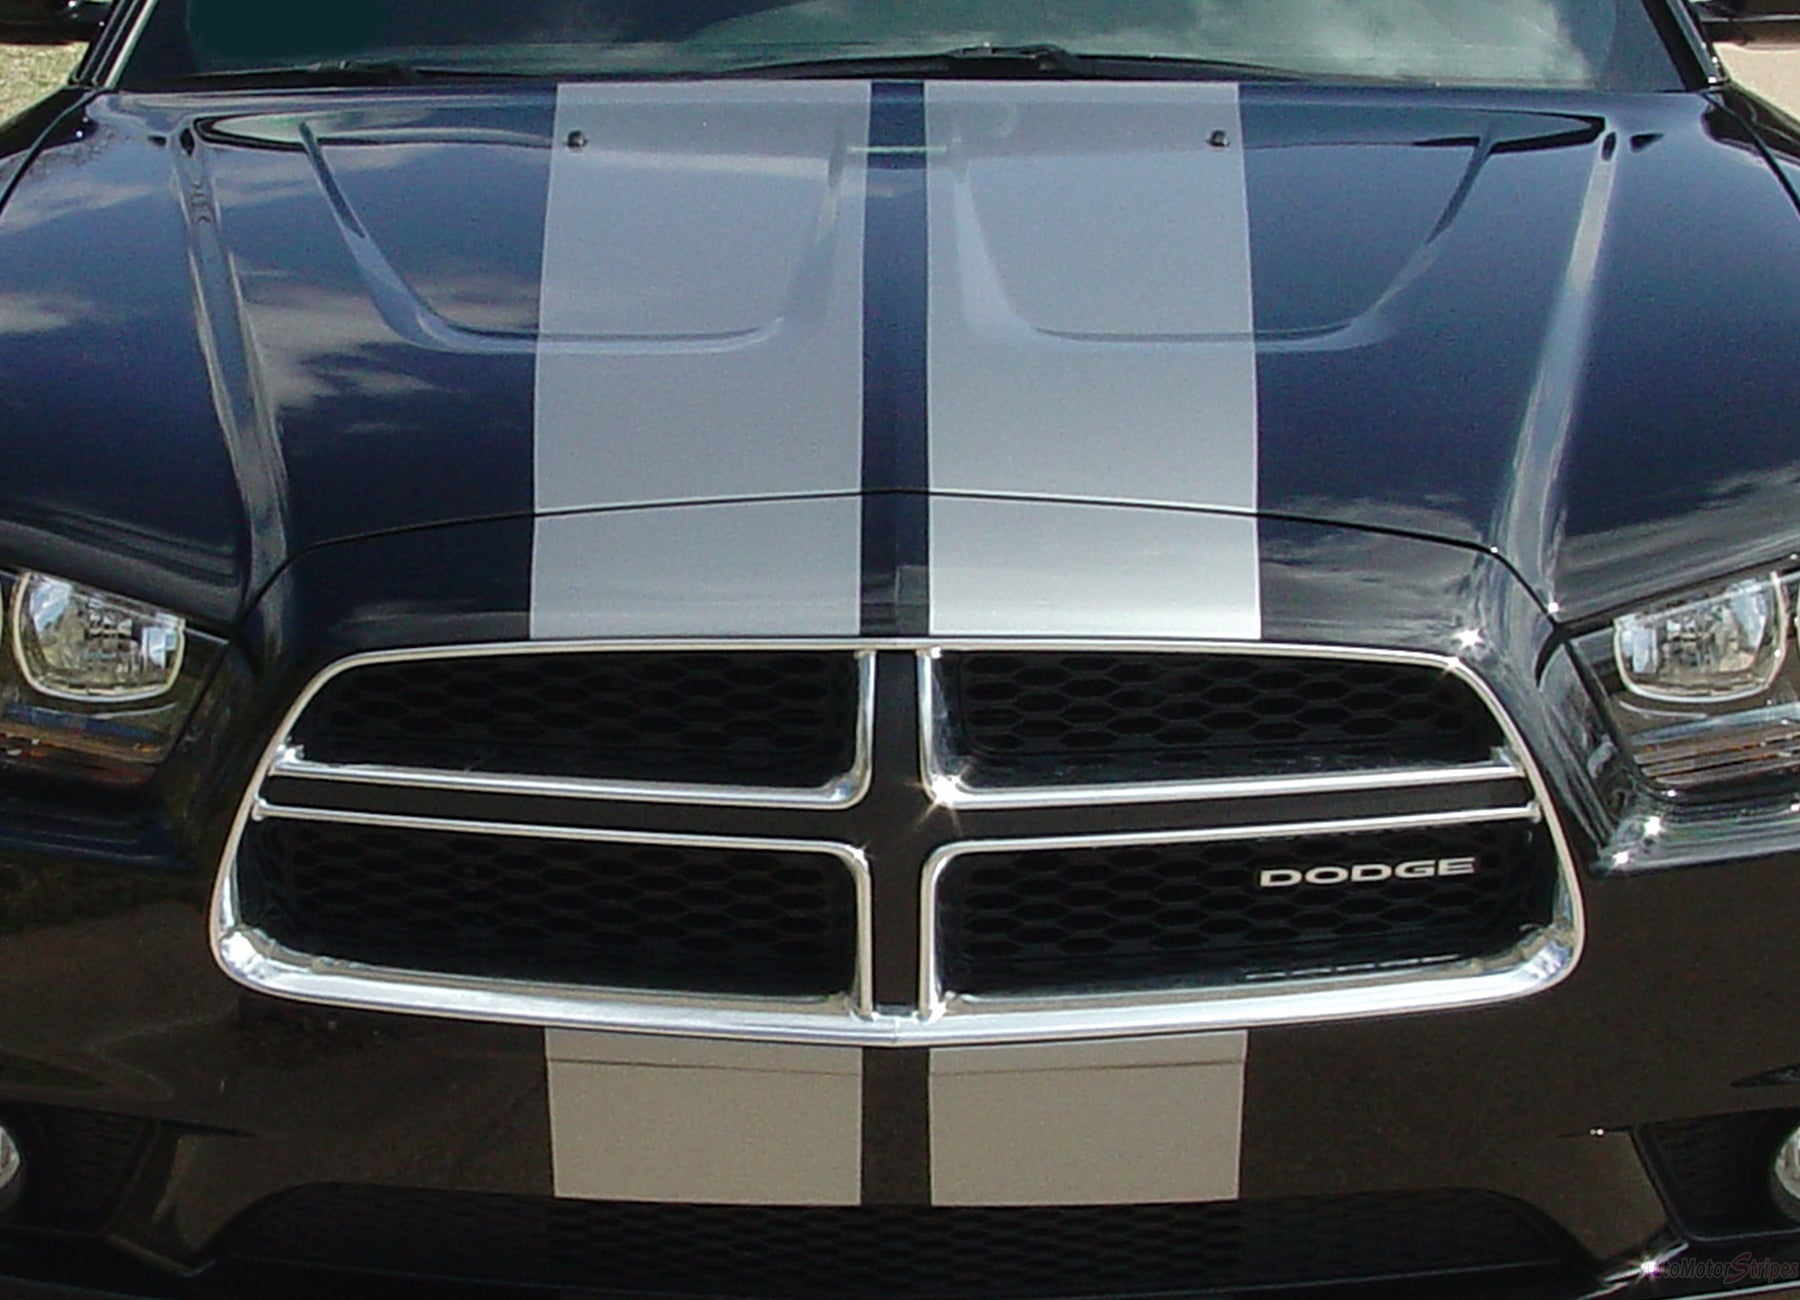 2011 2014 Dodge Charger Racing Stripes N Charge Rally Hood Decals Graphics Auto Motor Stripes Decals Vinyl Graphics And 3m Striping Kits